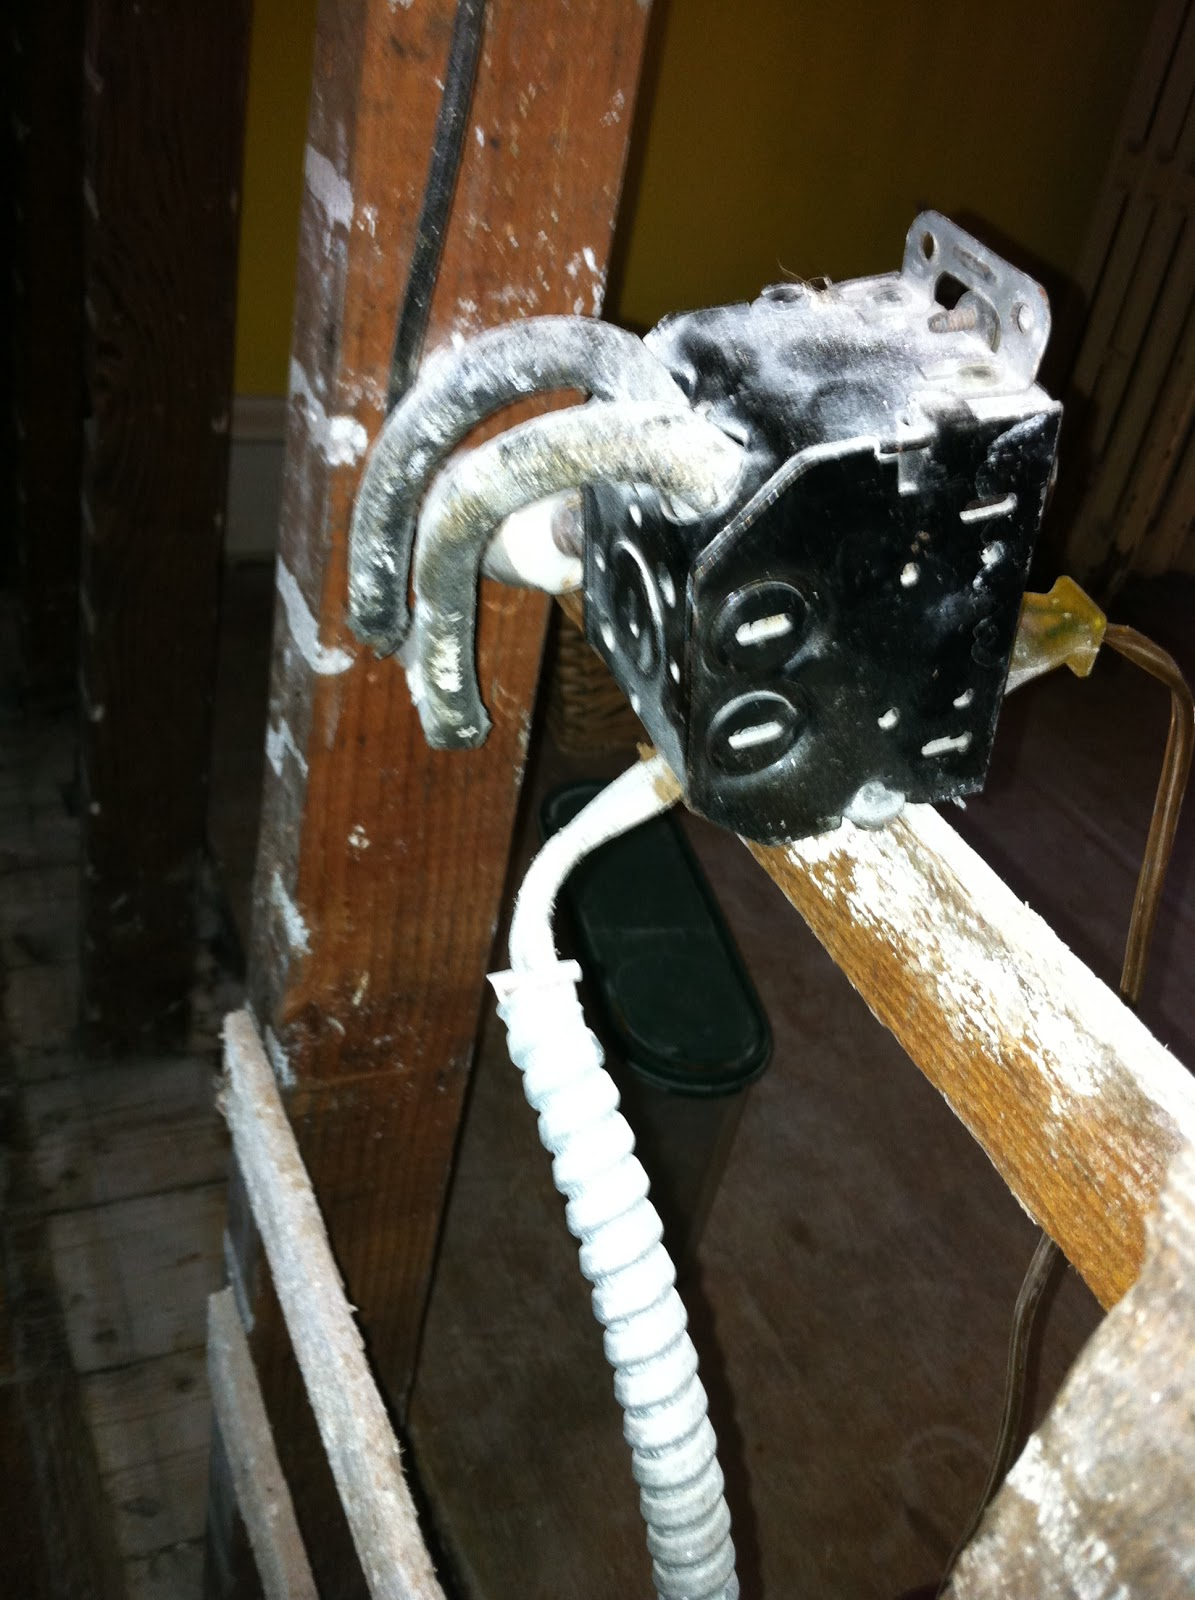 Gen3 Electric 215 352 5963 What Does Knob And Tube Look Like With Wiring Behind Plaster Walls You Know This Is Original Because The Old Boxed Were Designed To Attach Directly Wood Lath Installed Before